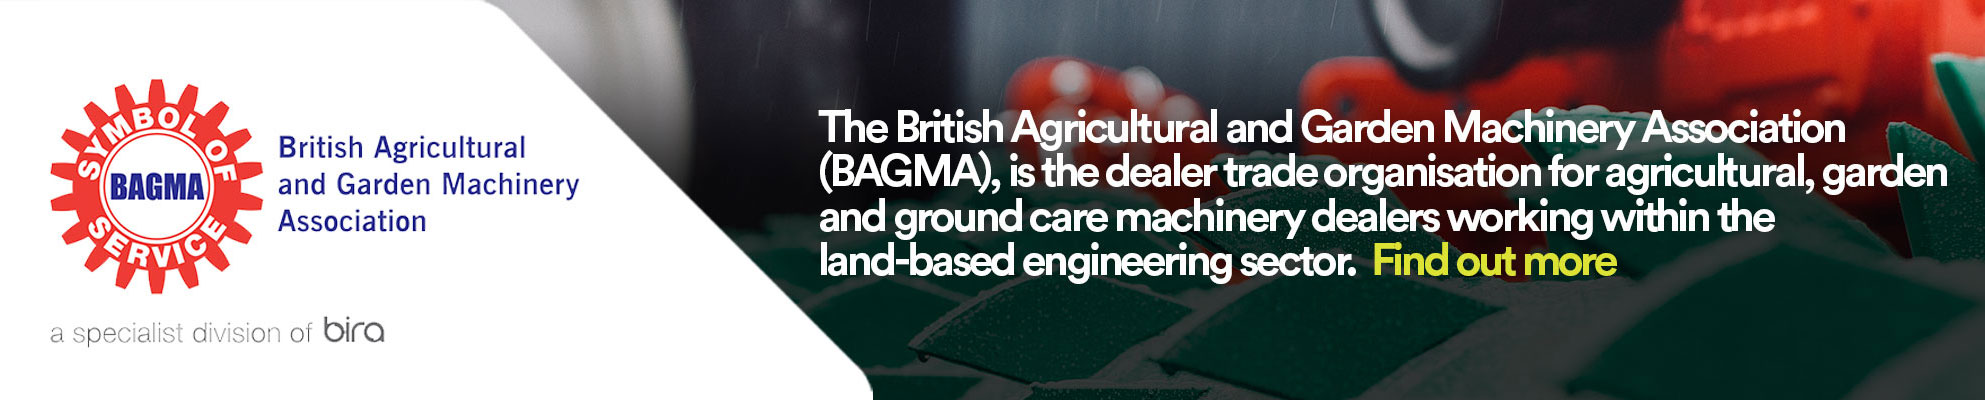 British Agricultural and Garden Machinery Association (BAGMA)